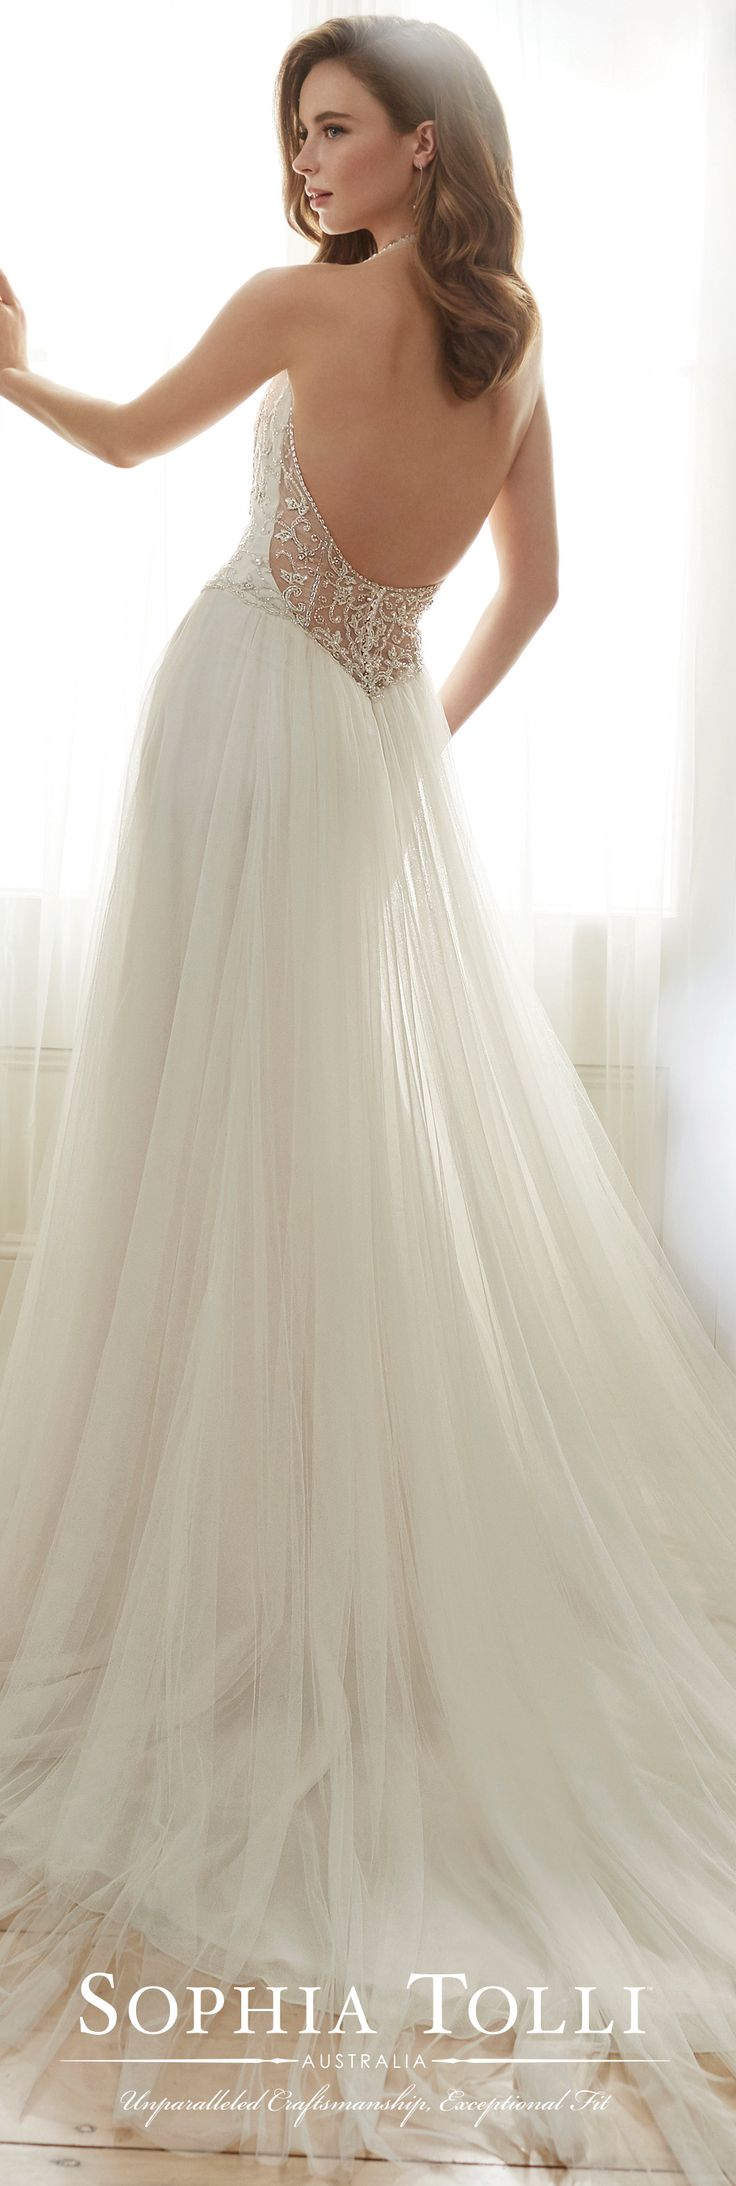 Sophia Tolli Spring 2017 Wedding Gown Collection - Style No. Y11714 Celestia - sleeveless tulle wedding dress with beaded illusion halter neckline and plunging sweetheart bodice